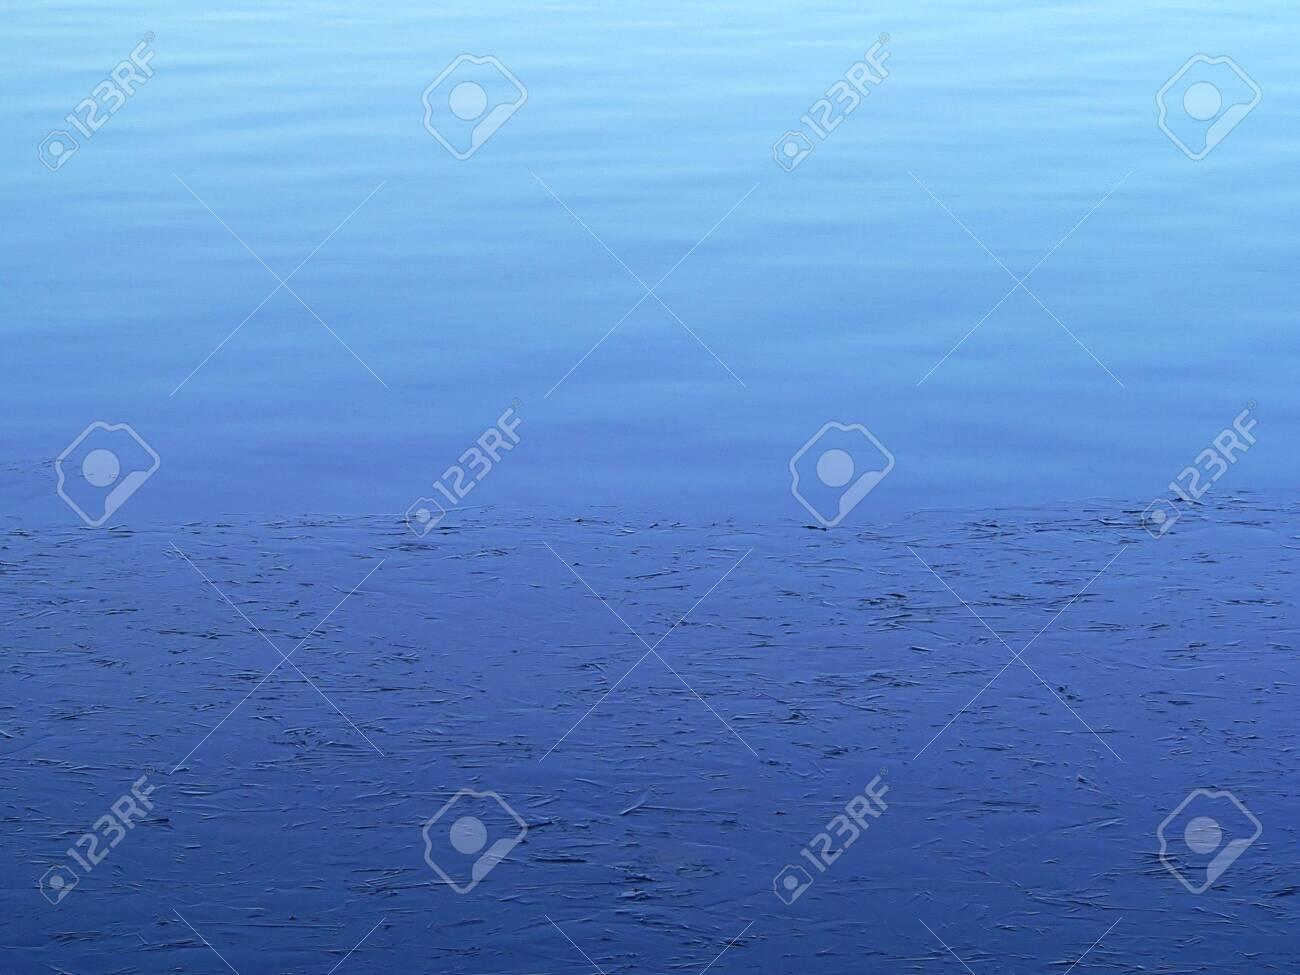 Ice on a blue water. Stock Photo - 4086714